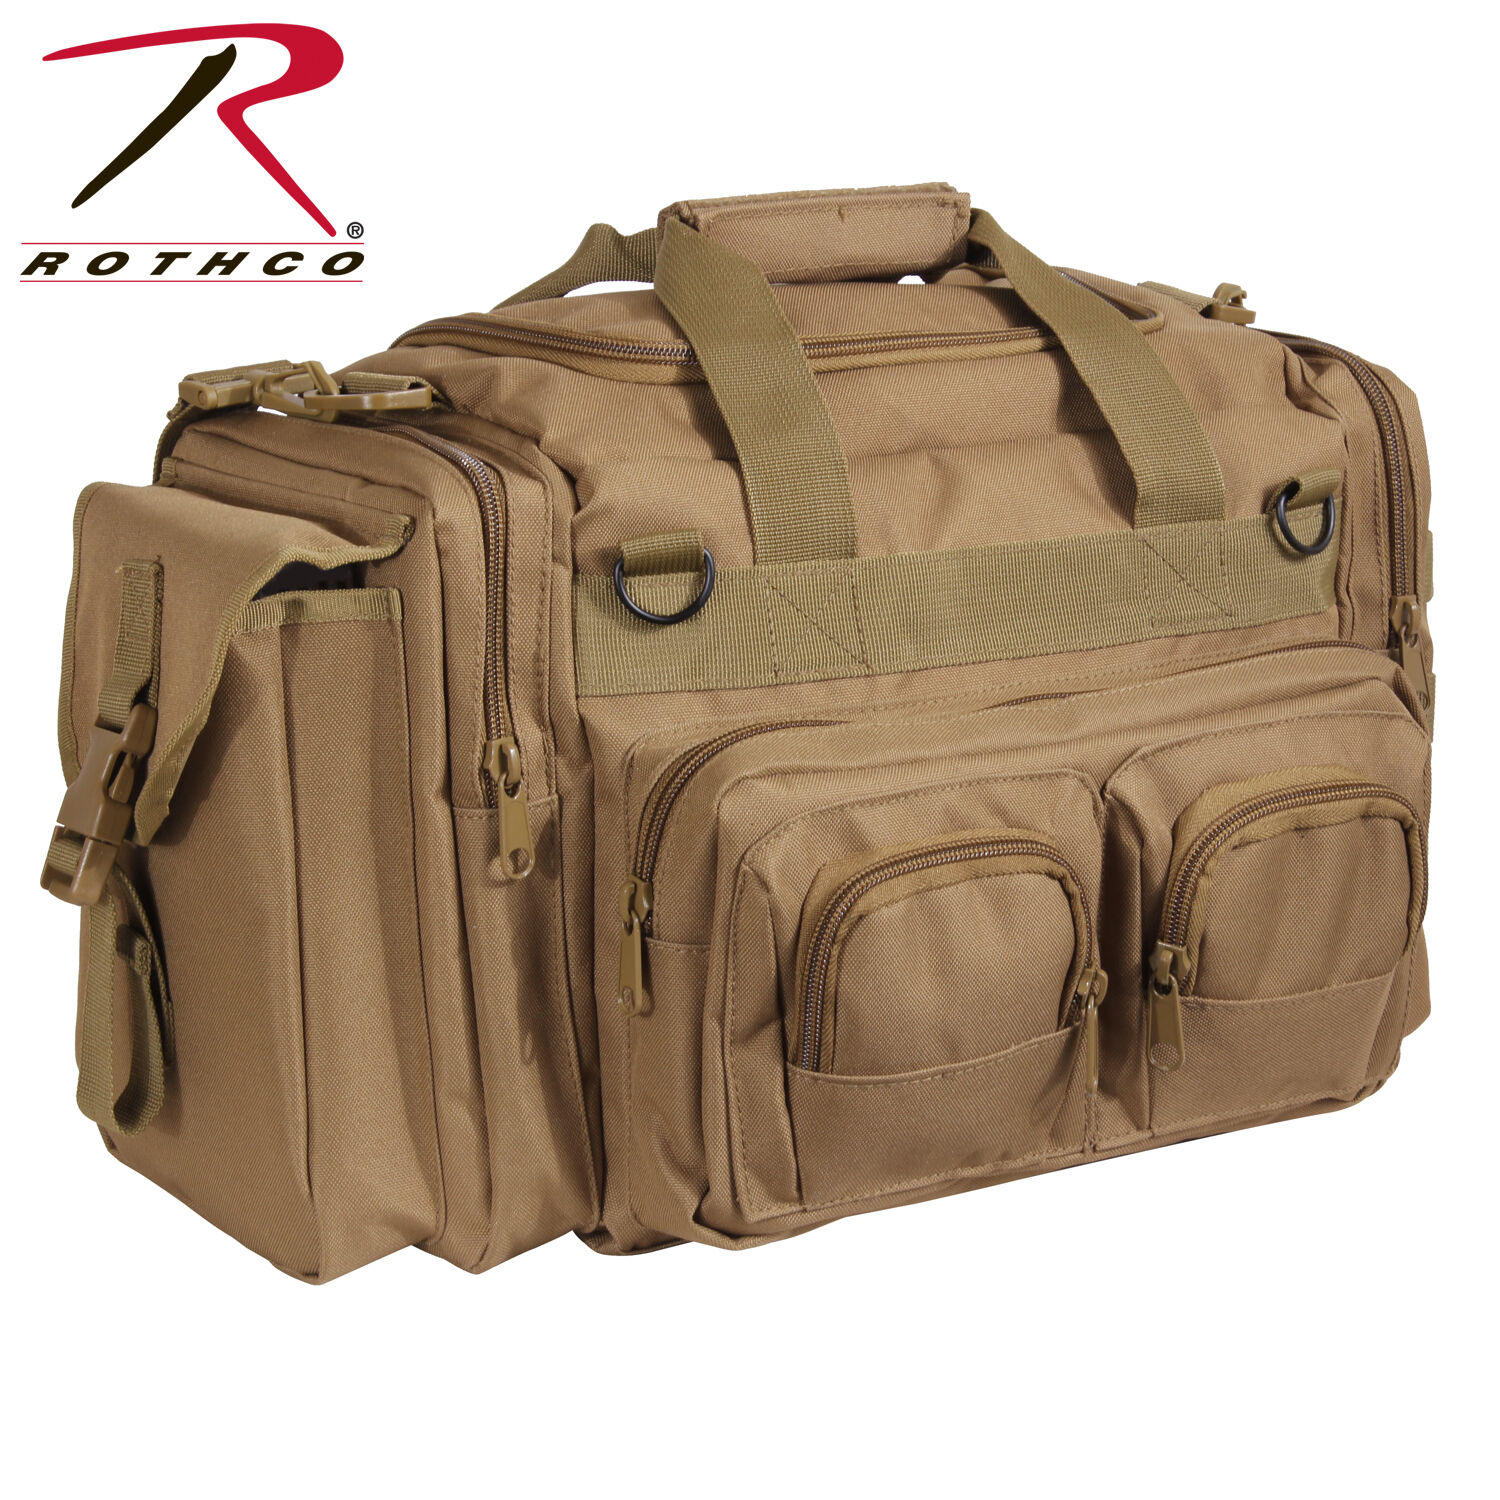 redhco 2653 Concealed Carry Bag - Coyote Brown